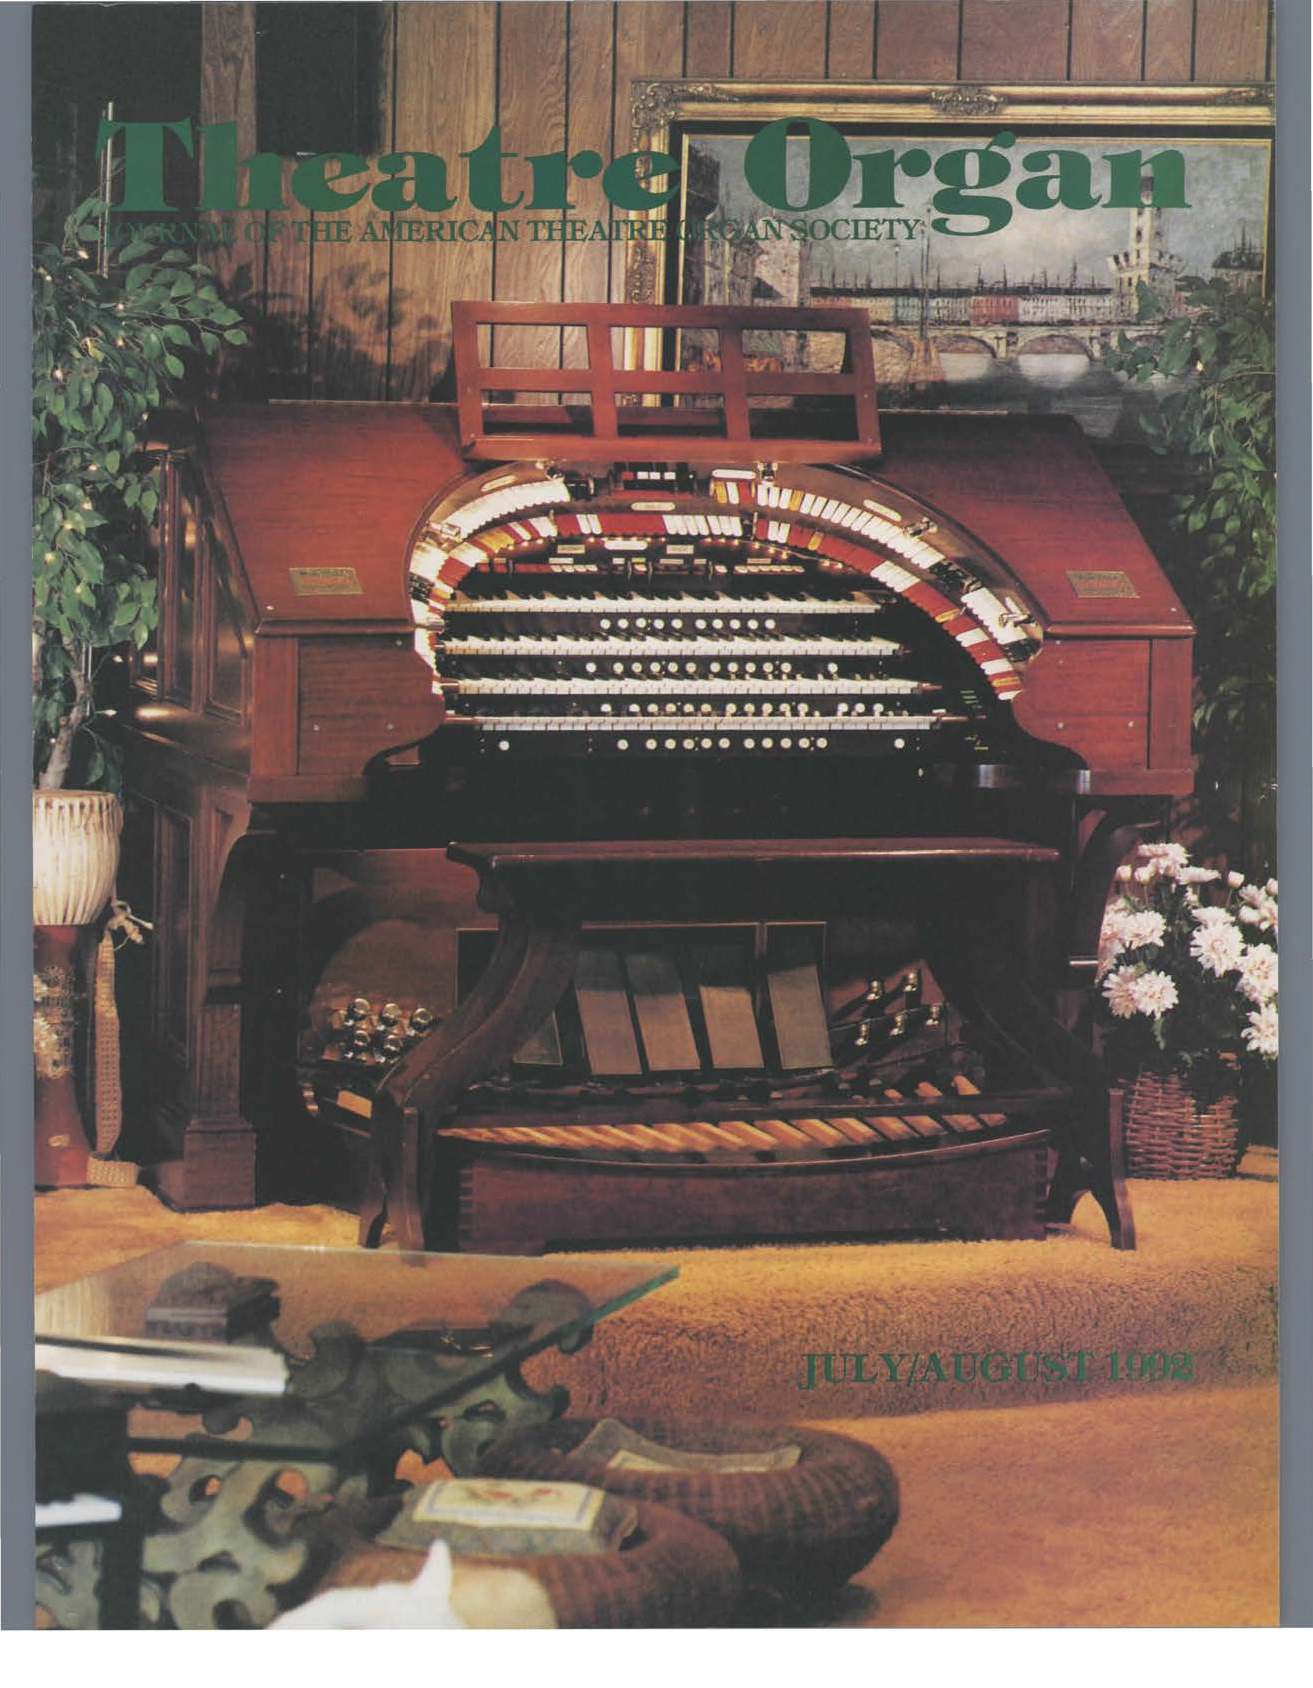 Theatre Organ, July - August 1992, Volume 34, Number 4